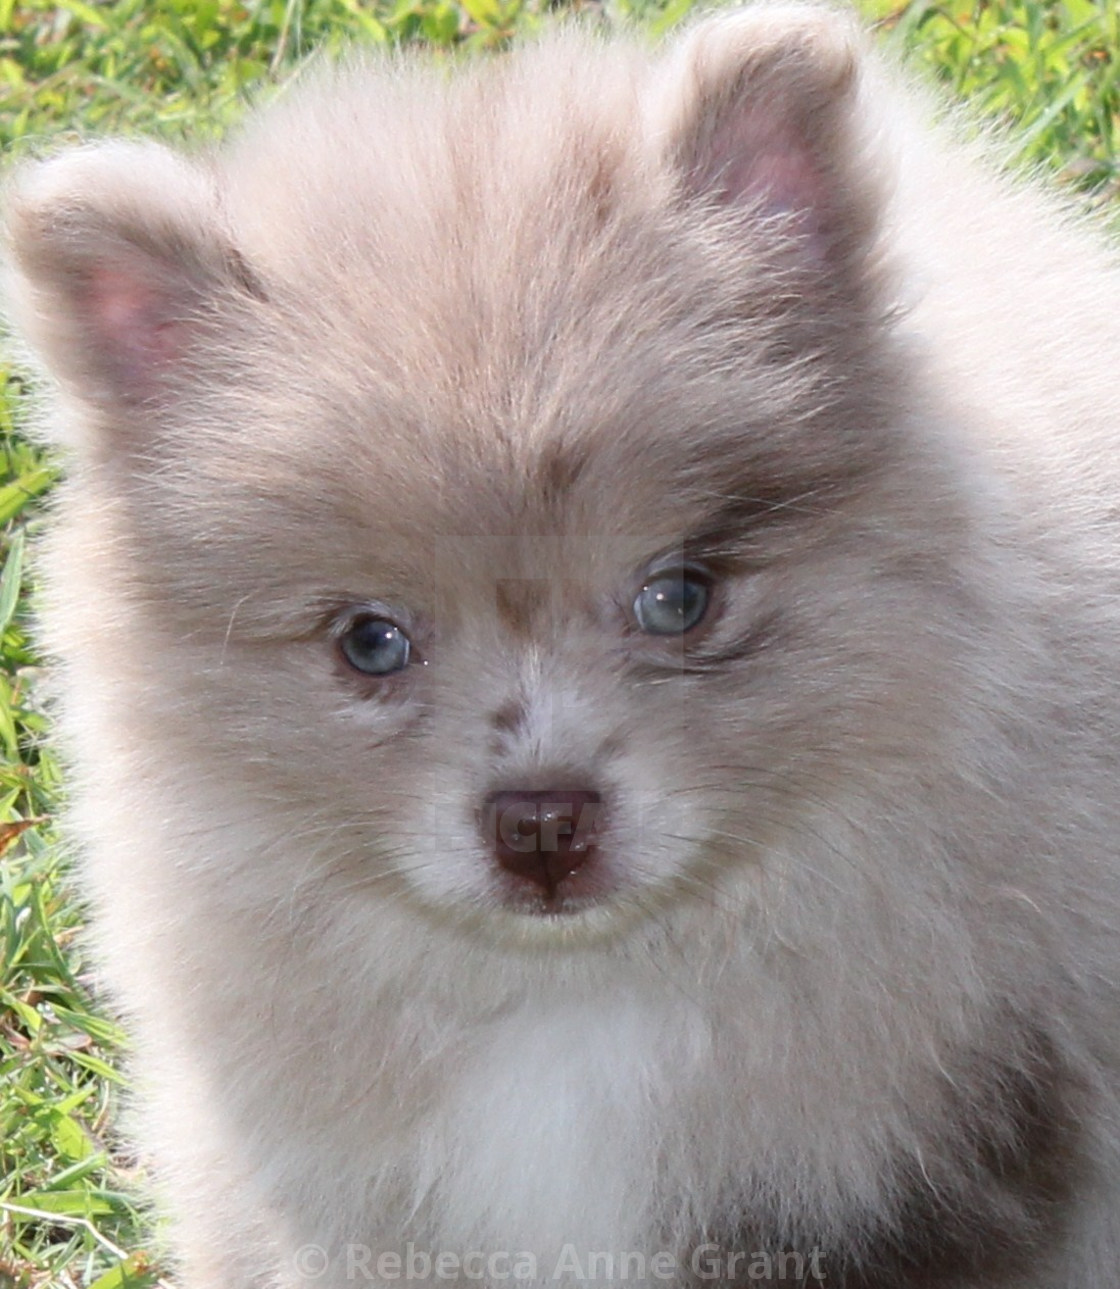 Just Look At Those Blue Eyes Chocolate Merle Pomeranian Puppy License Download Or Print For 9 74 Photos Picfair